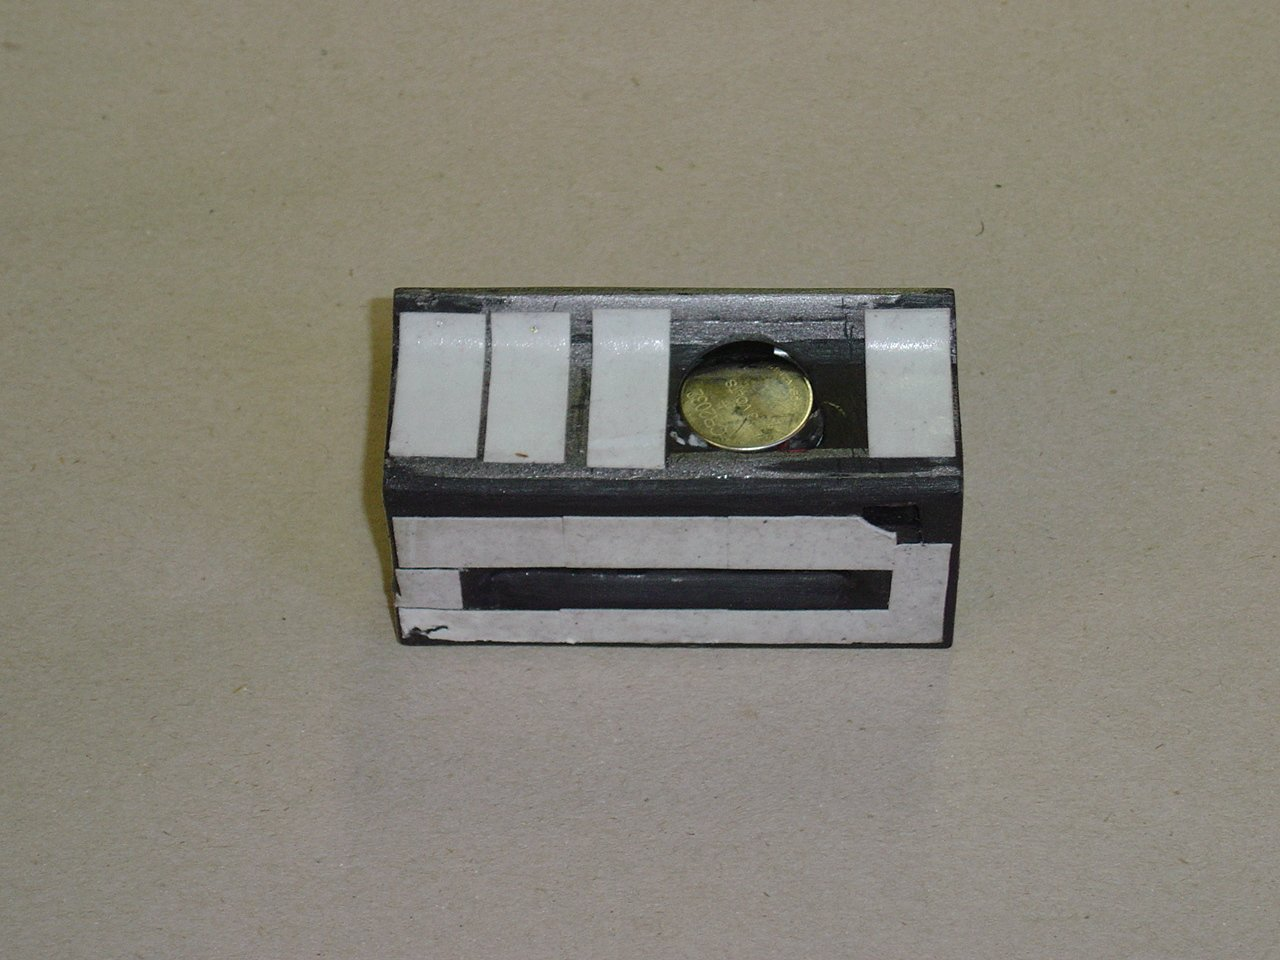 Top of card-reader showing battery.